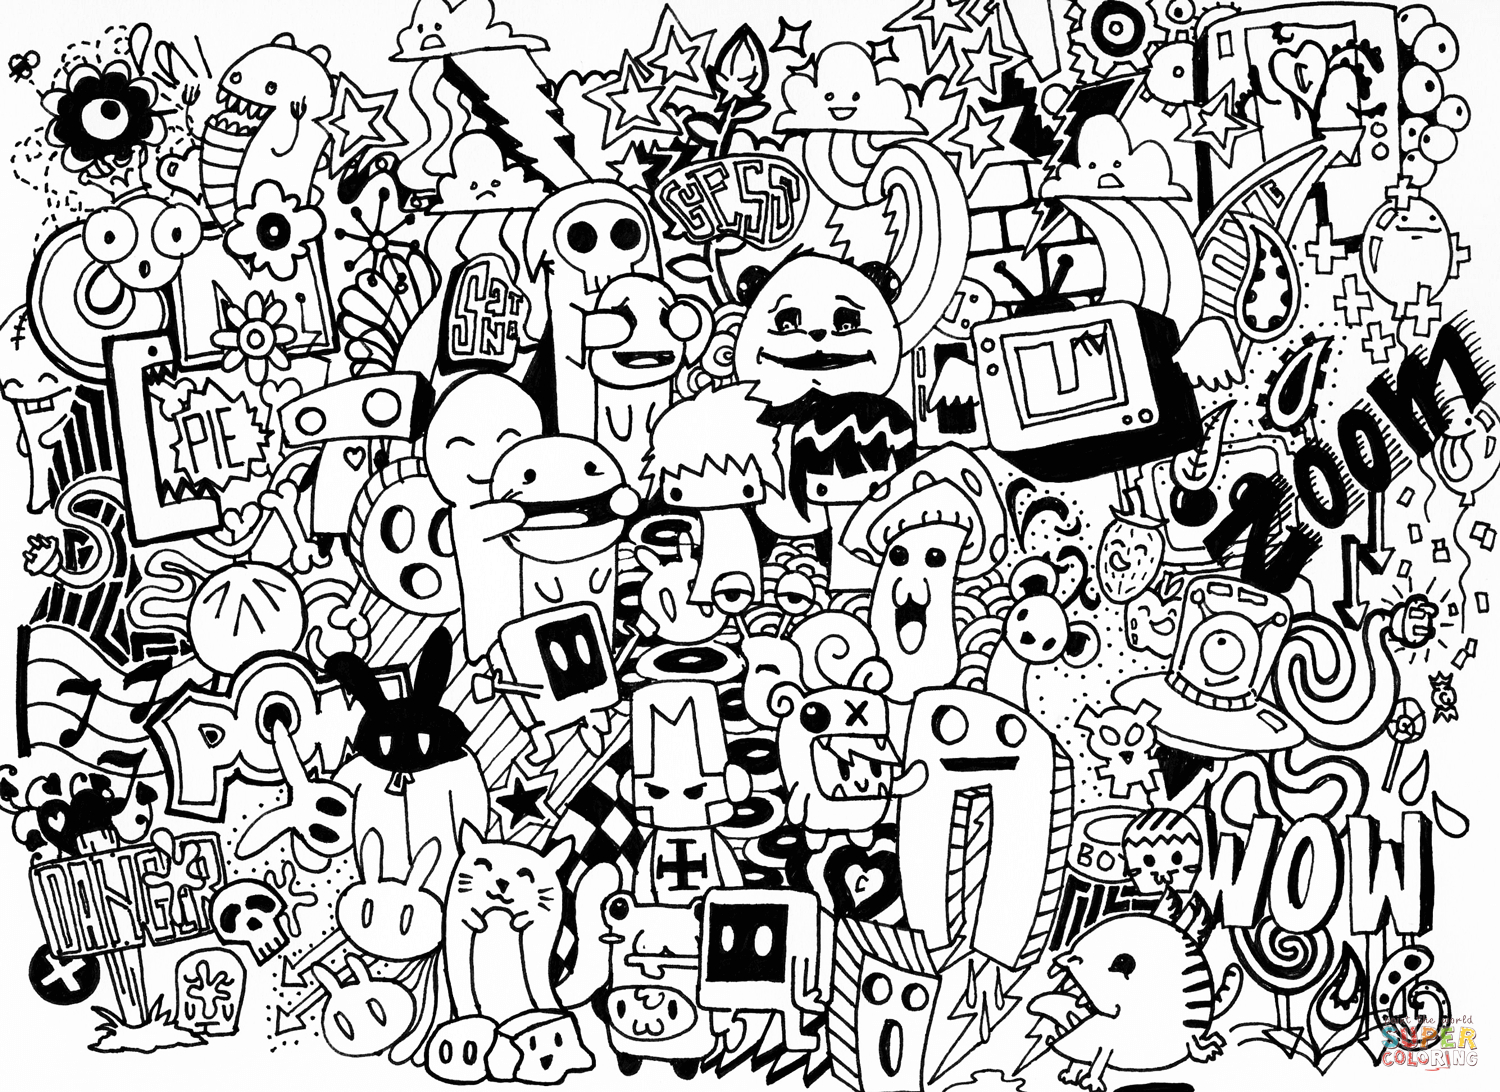 Doodle Art Coloring Pages   Free Coloring Pages   Doodled In 2019 - Free Printable Doodle Art Coloring Pages